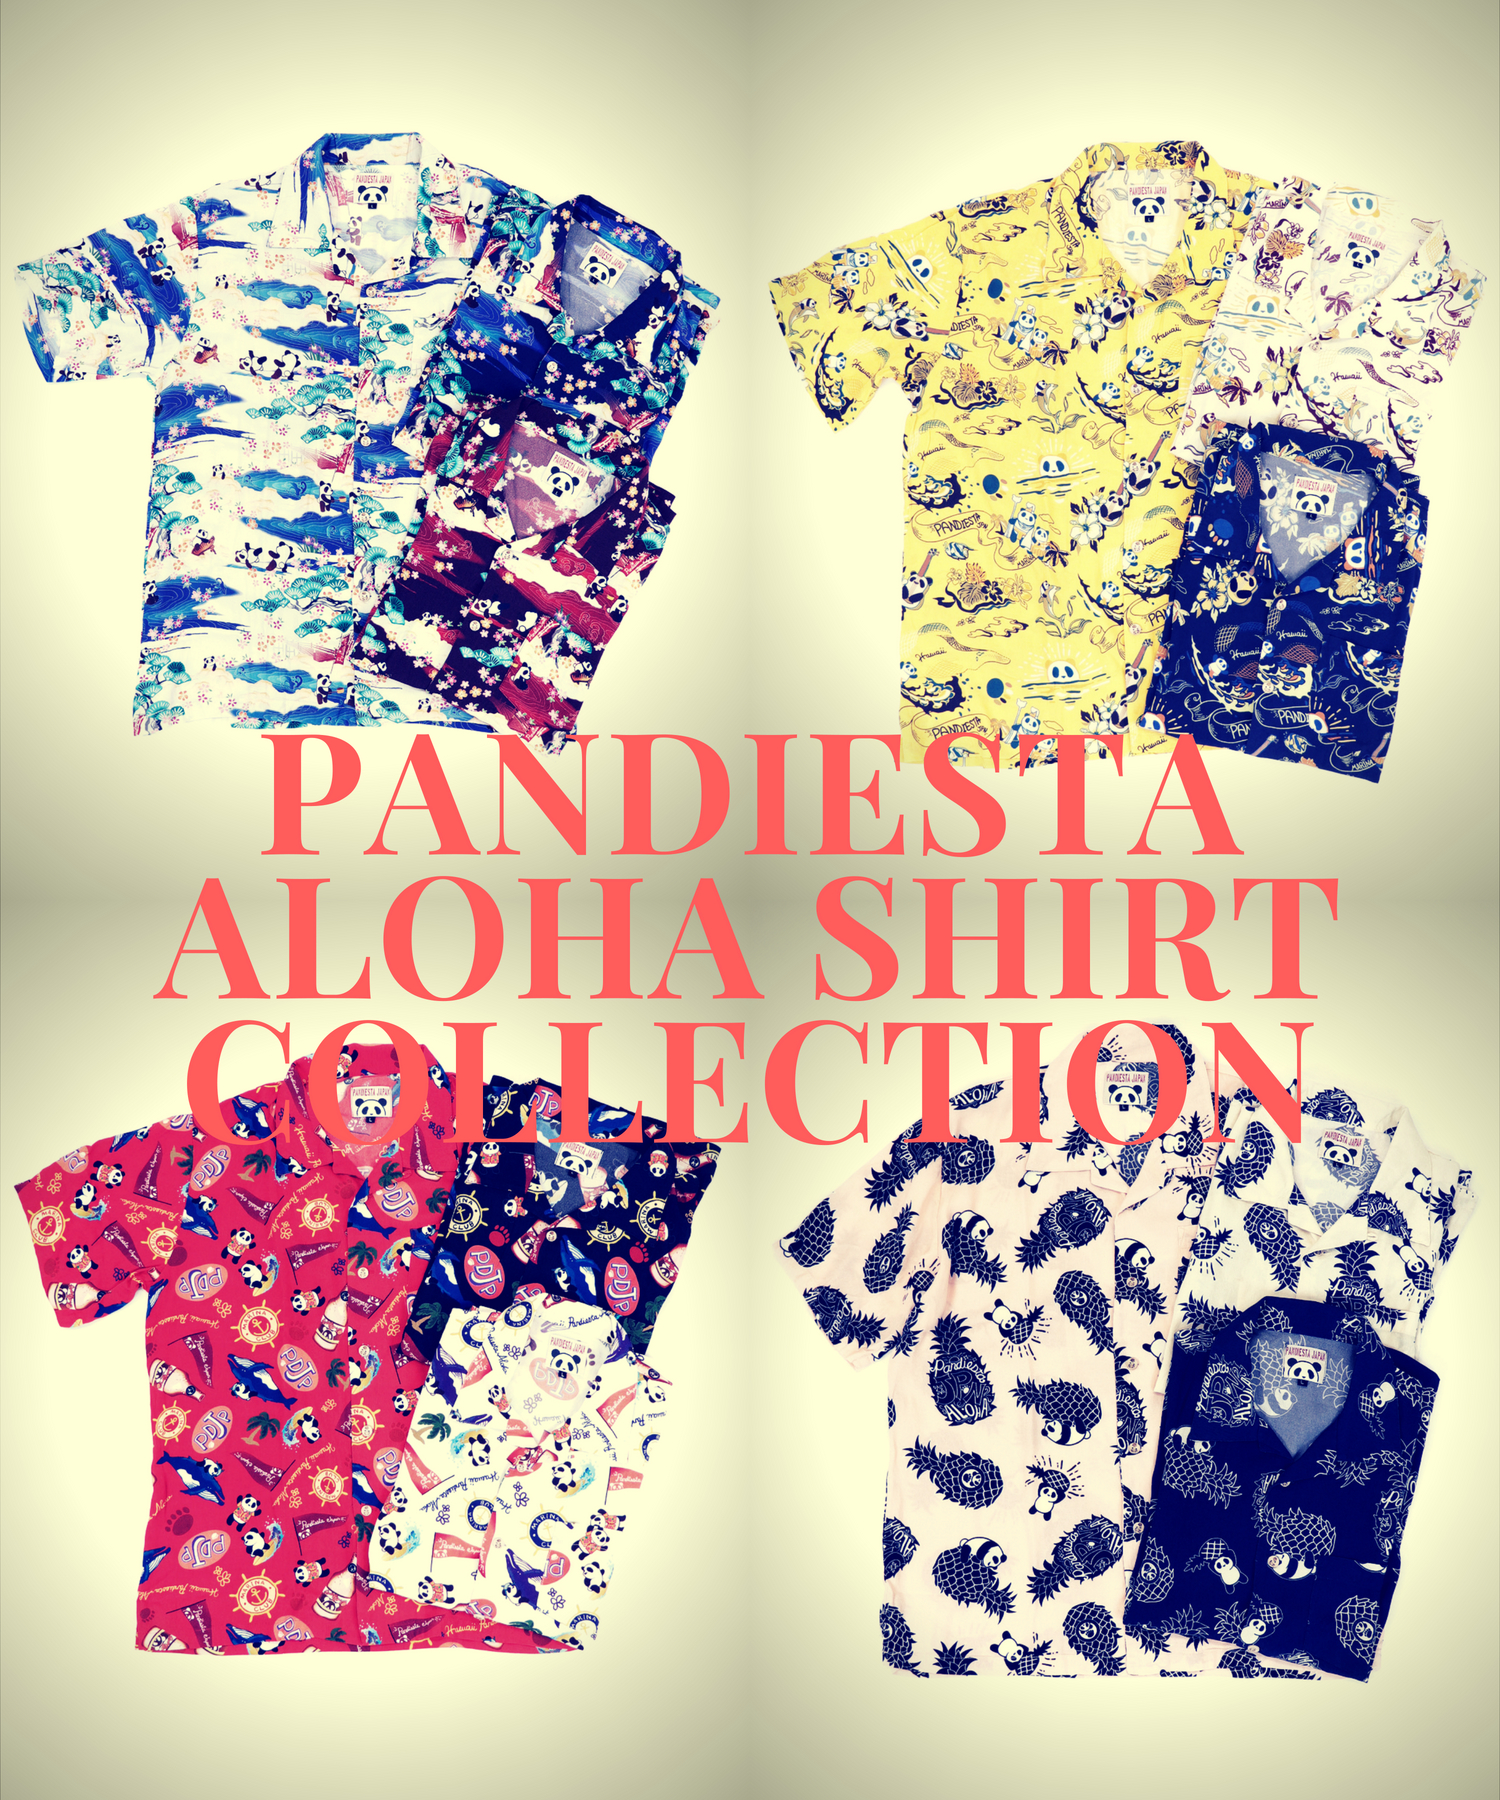 PANDIESTA ALOHA SHIRT COLLECTION